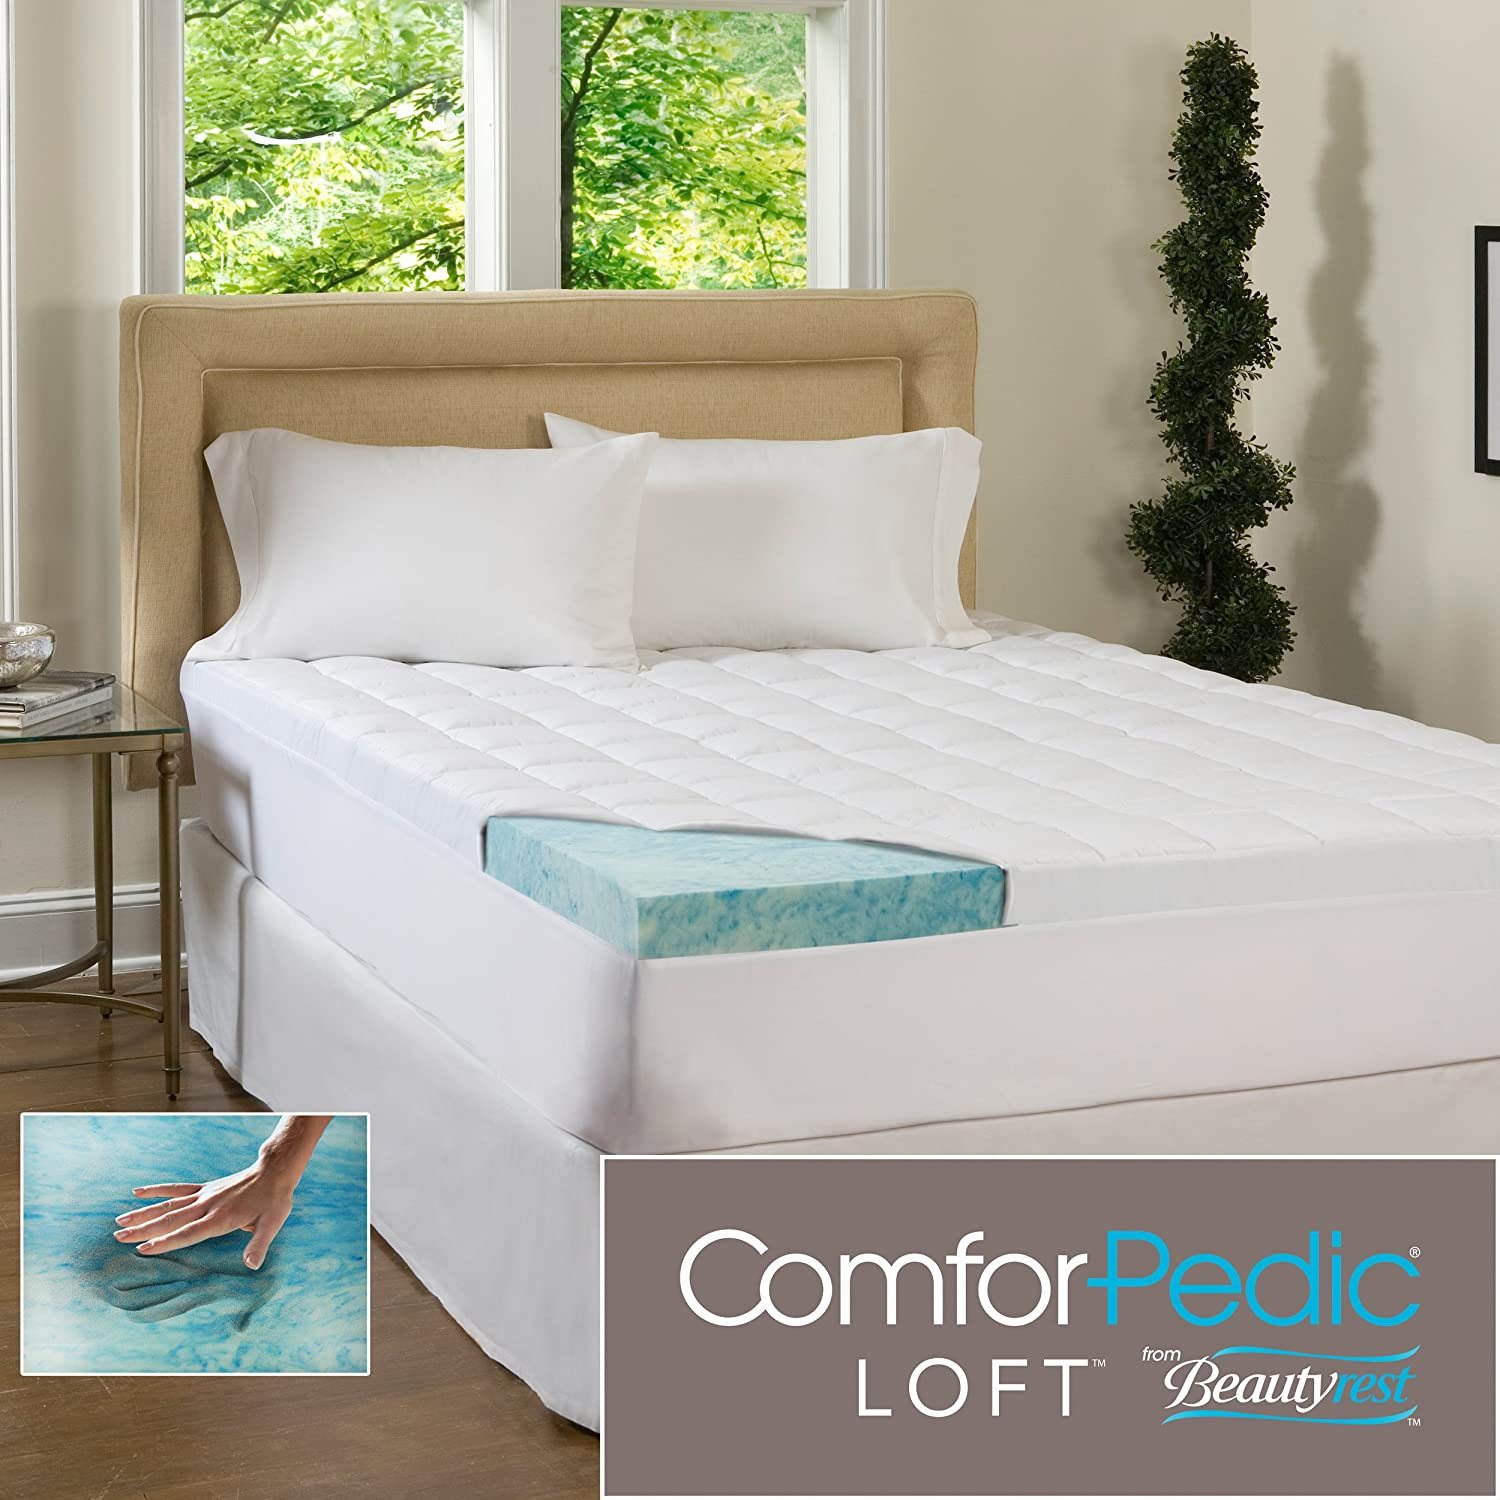 Amazon.com: ComforPedic Loft Beautyrest 5.5-Inch Supreme Gel Memory Foam  Topper for All Bed Sizes. Combining the 4-Inch Revolutionary Memory Foam  Infused ...